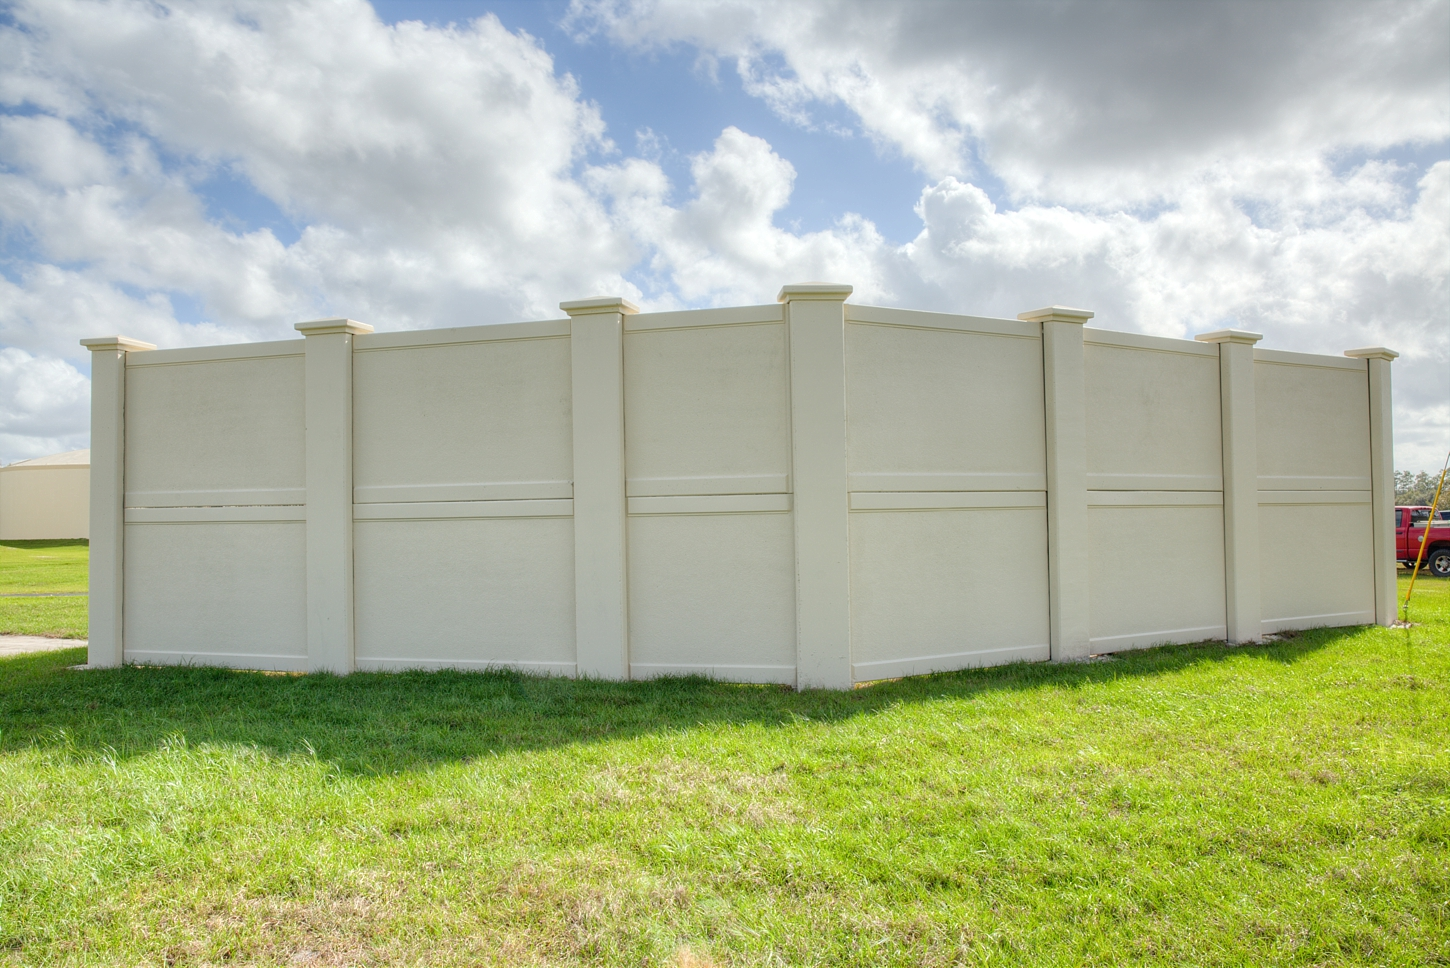 Permacast utility security fences and walls for homeland security